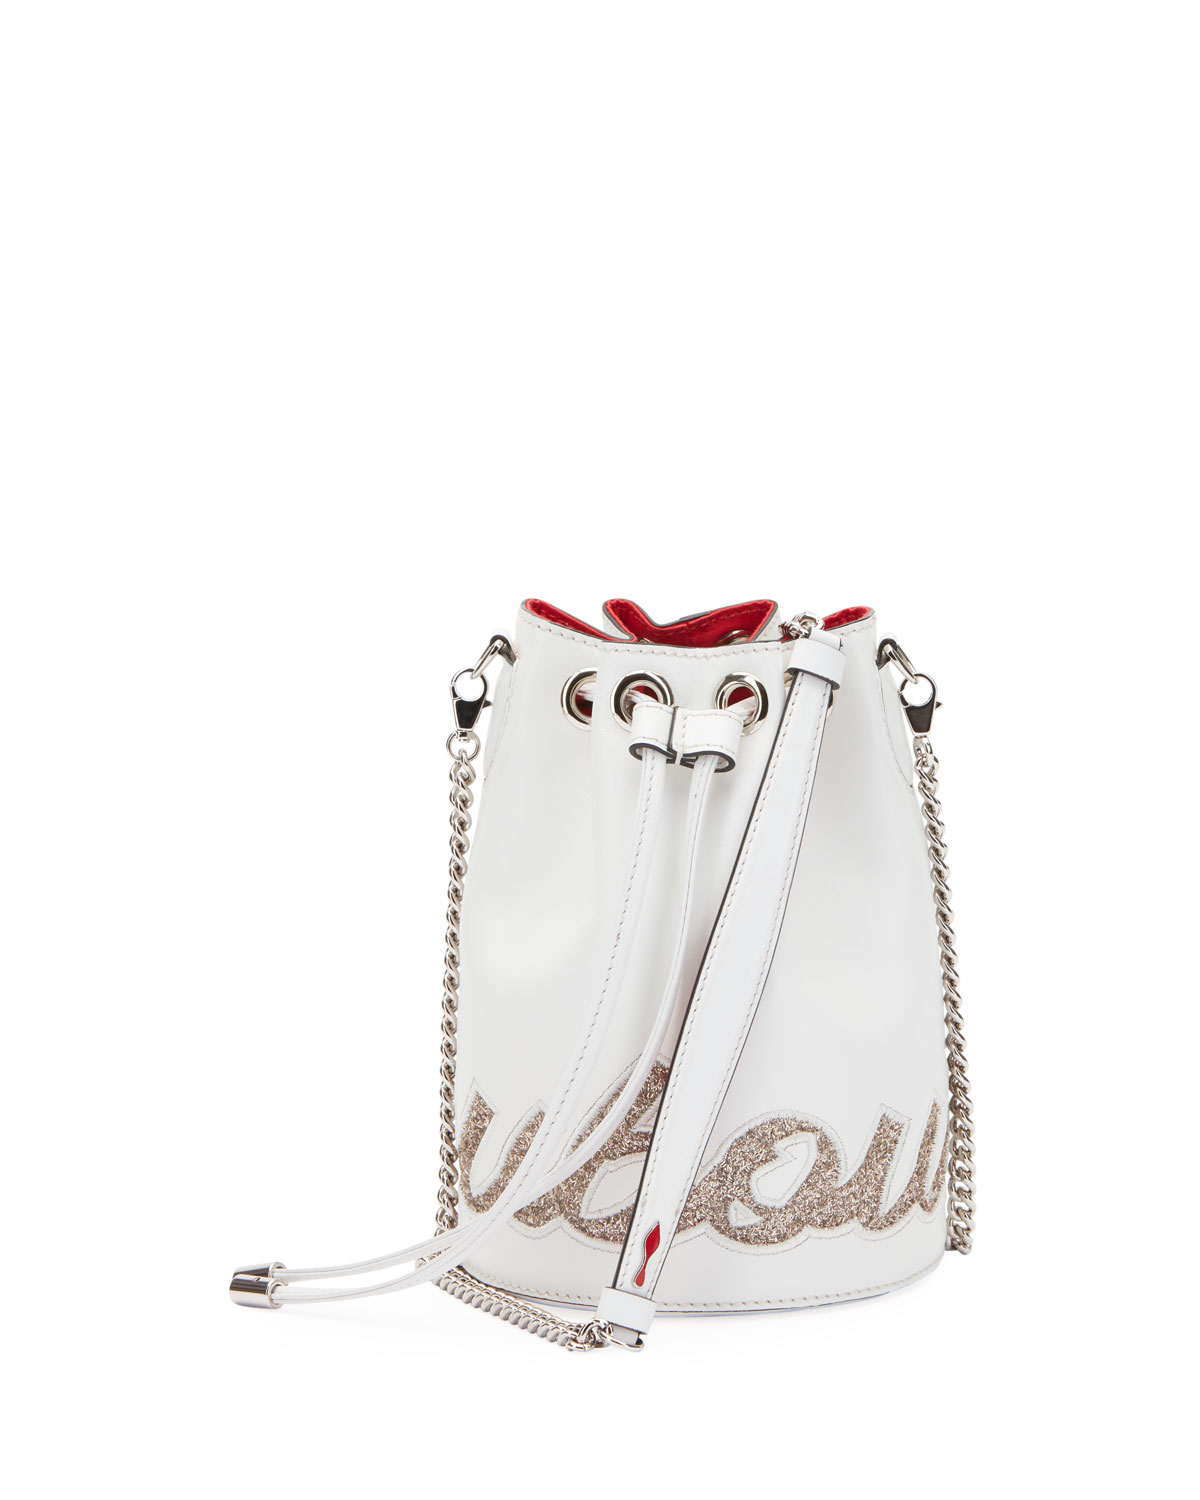 8a860e29a761 Christian Louboutin Marie Jane Paris Glitter Calf Bucket Bag ...